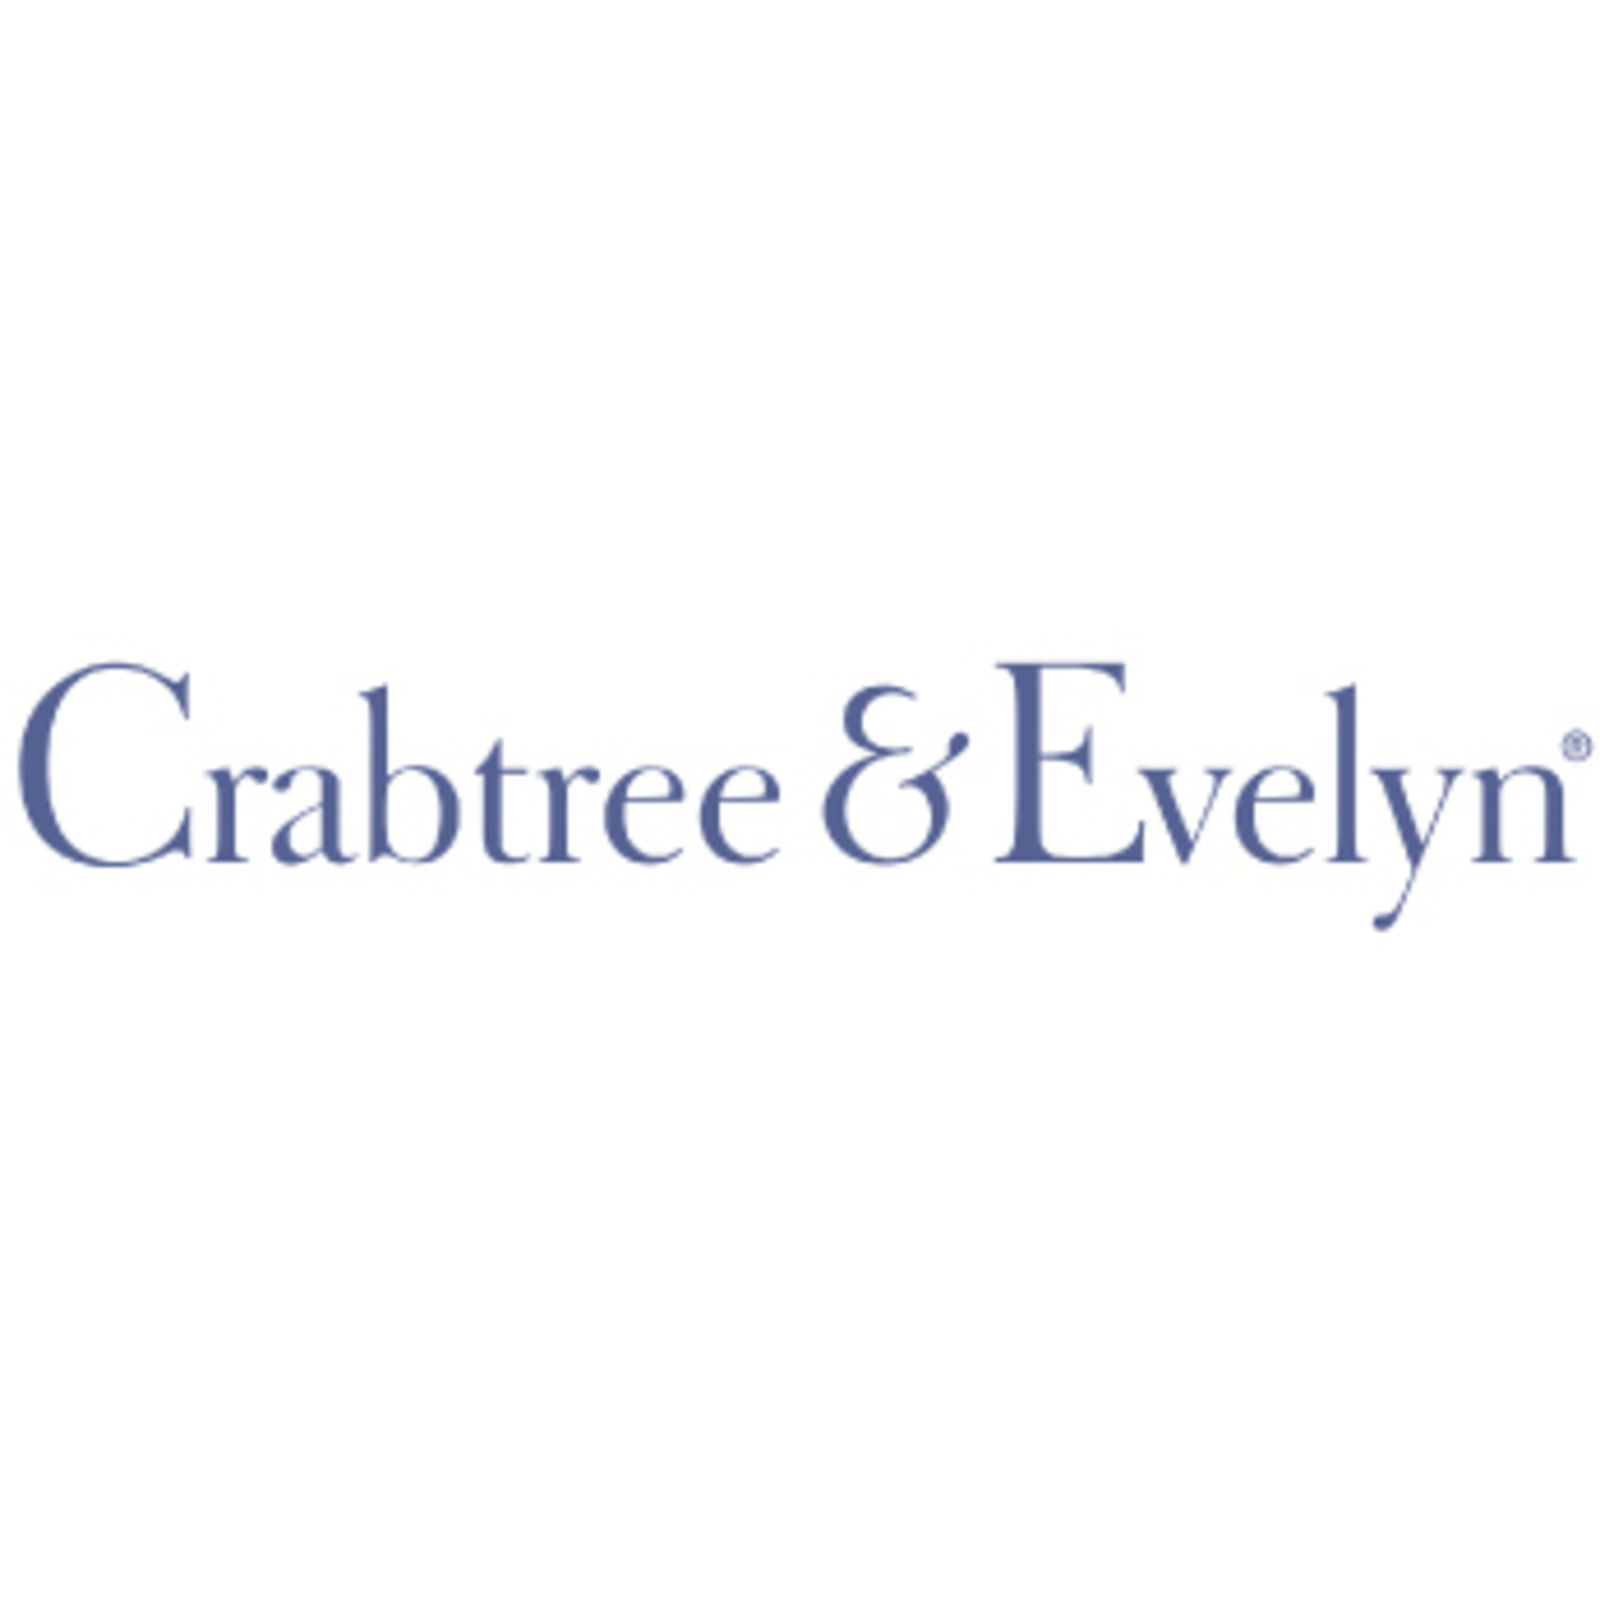 CRABTREE & EVELYN (Bild 1)